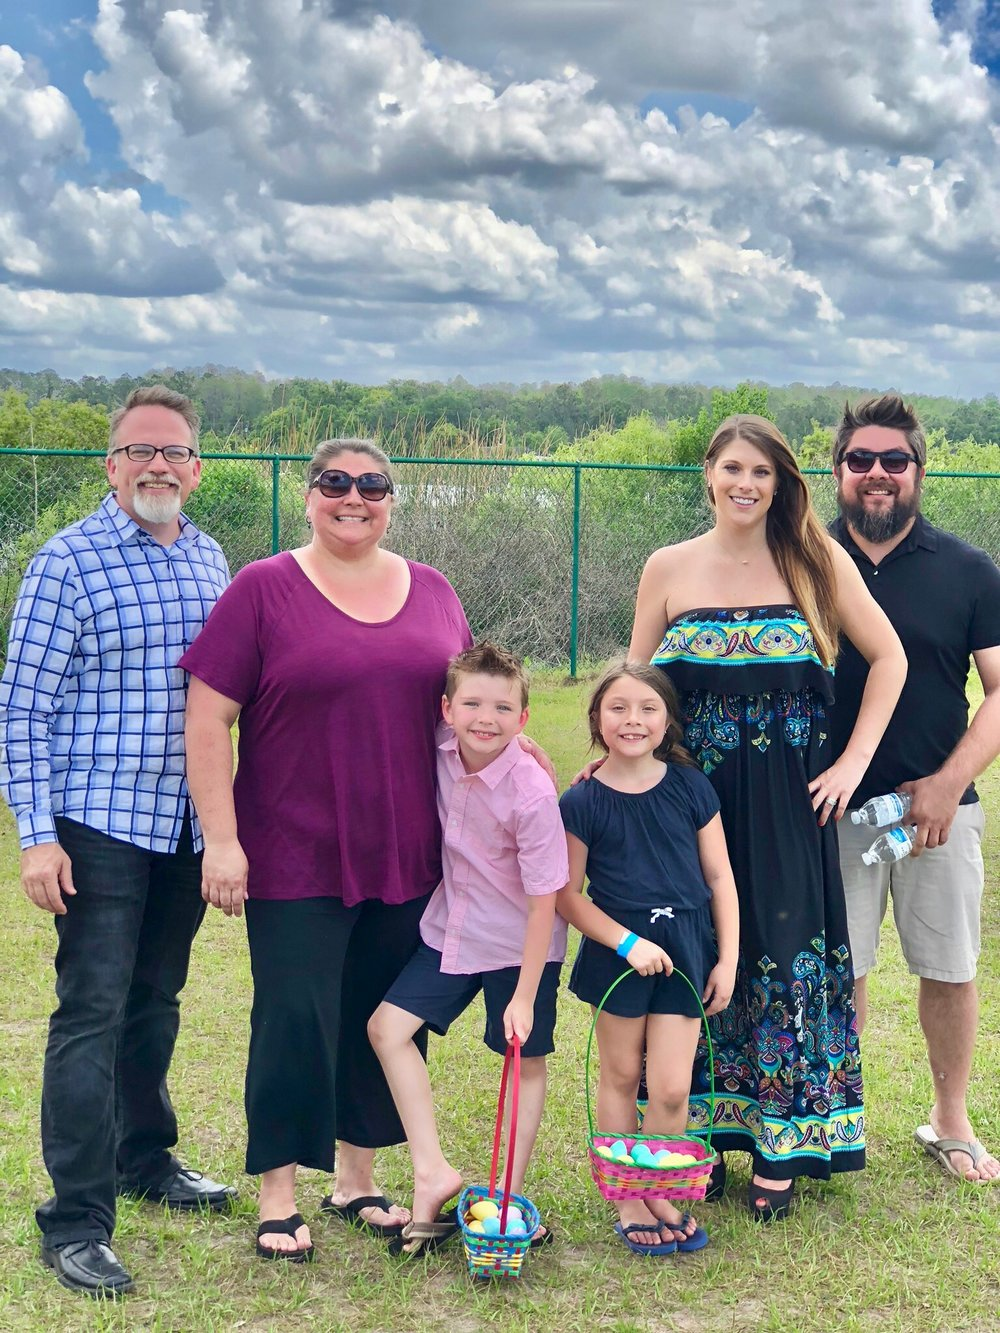 Travis, Gina, & Noah Moffitt with Javier, Danielle, & Saige Mendoza, Co Founders of Connect Global, enjoying Easter Sunday in Florida